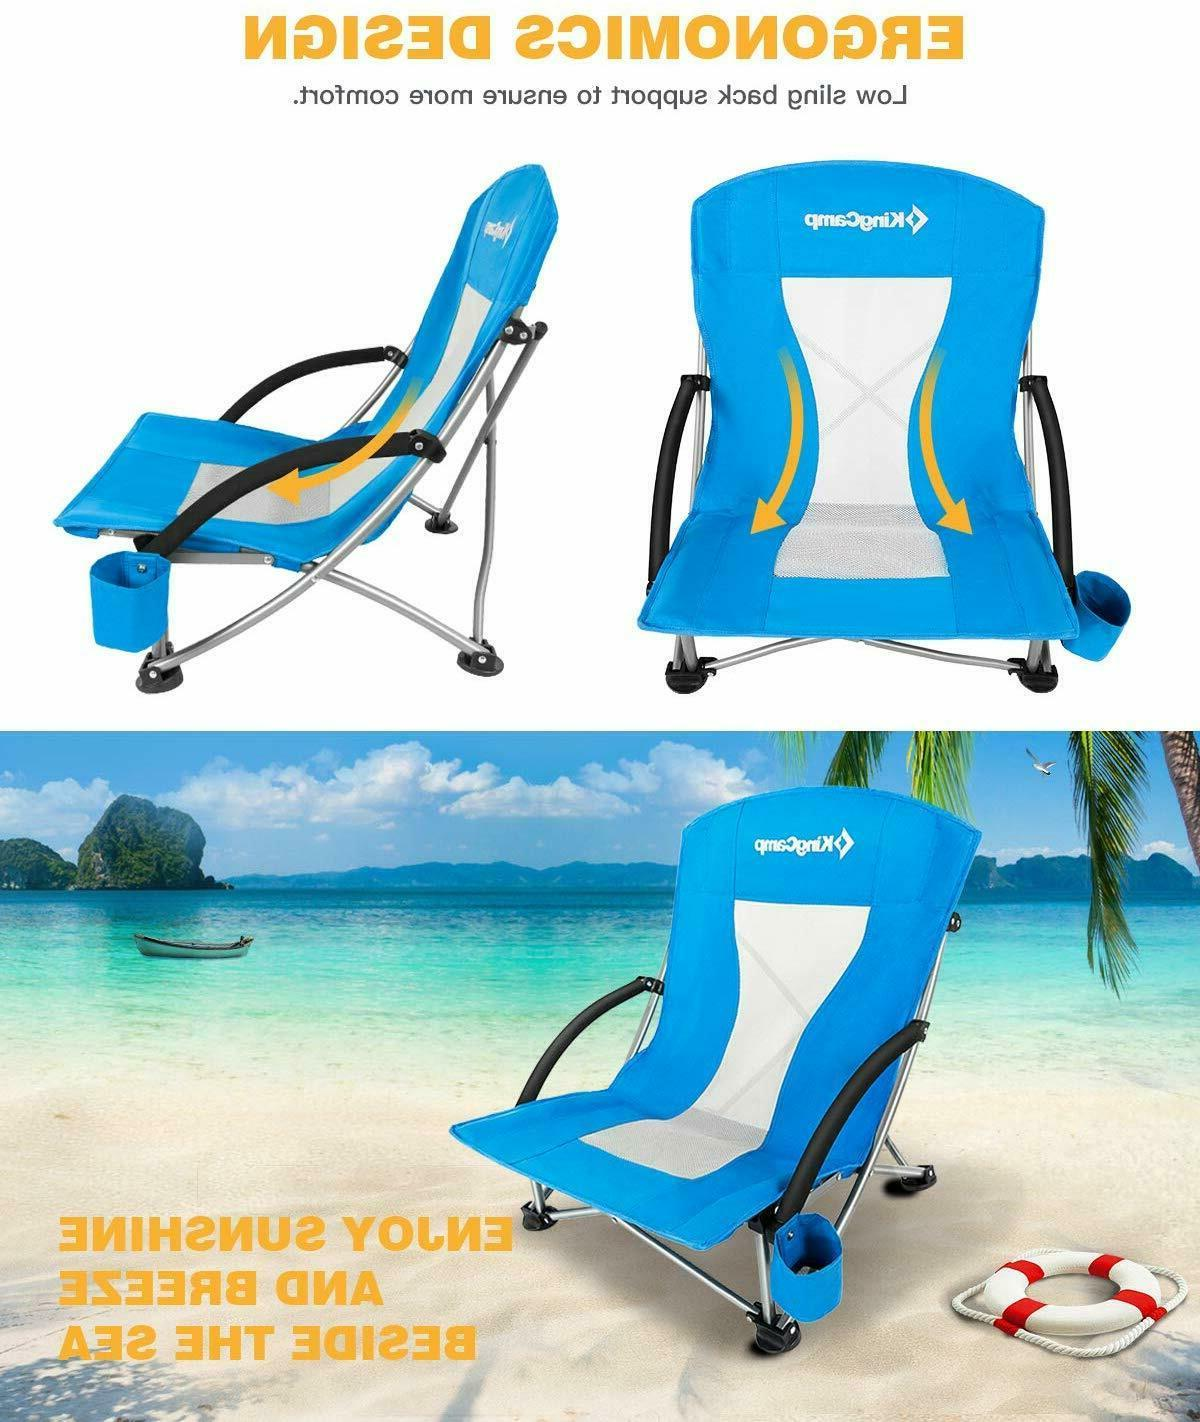 2 Camping Concert Chair, Low, Mesh